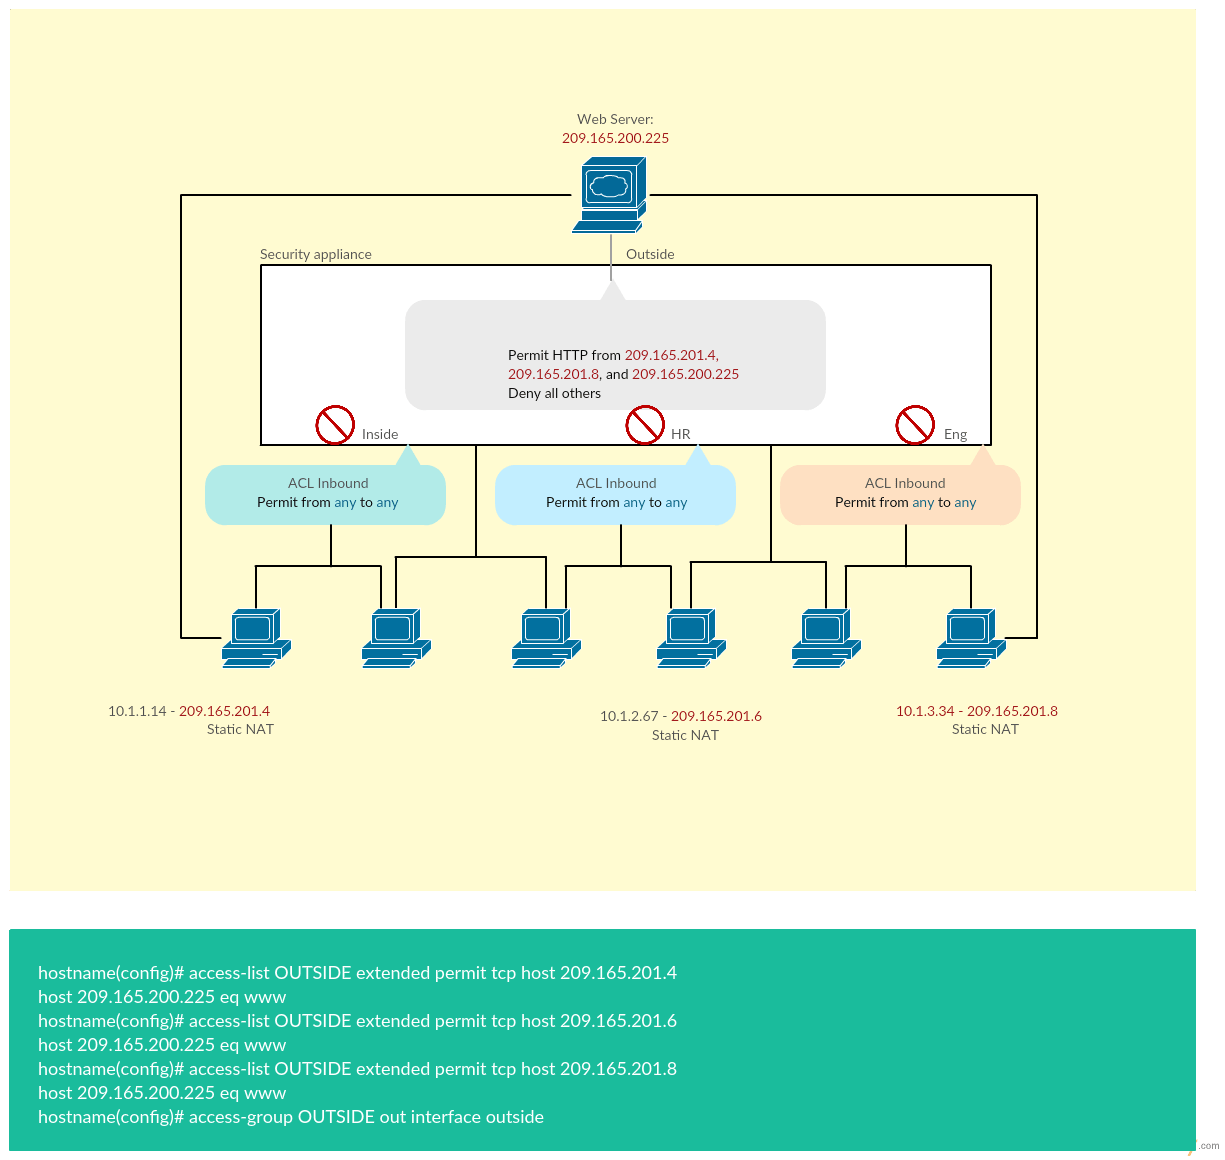 network diagram online heating wiring cisco templates to get you started right away creately